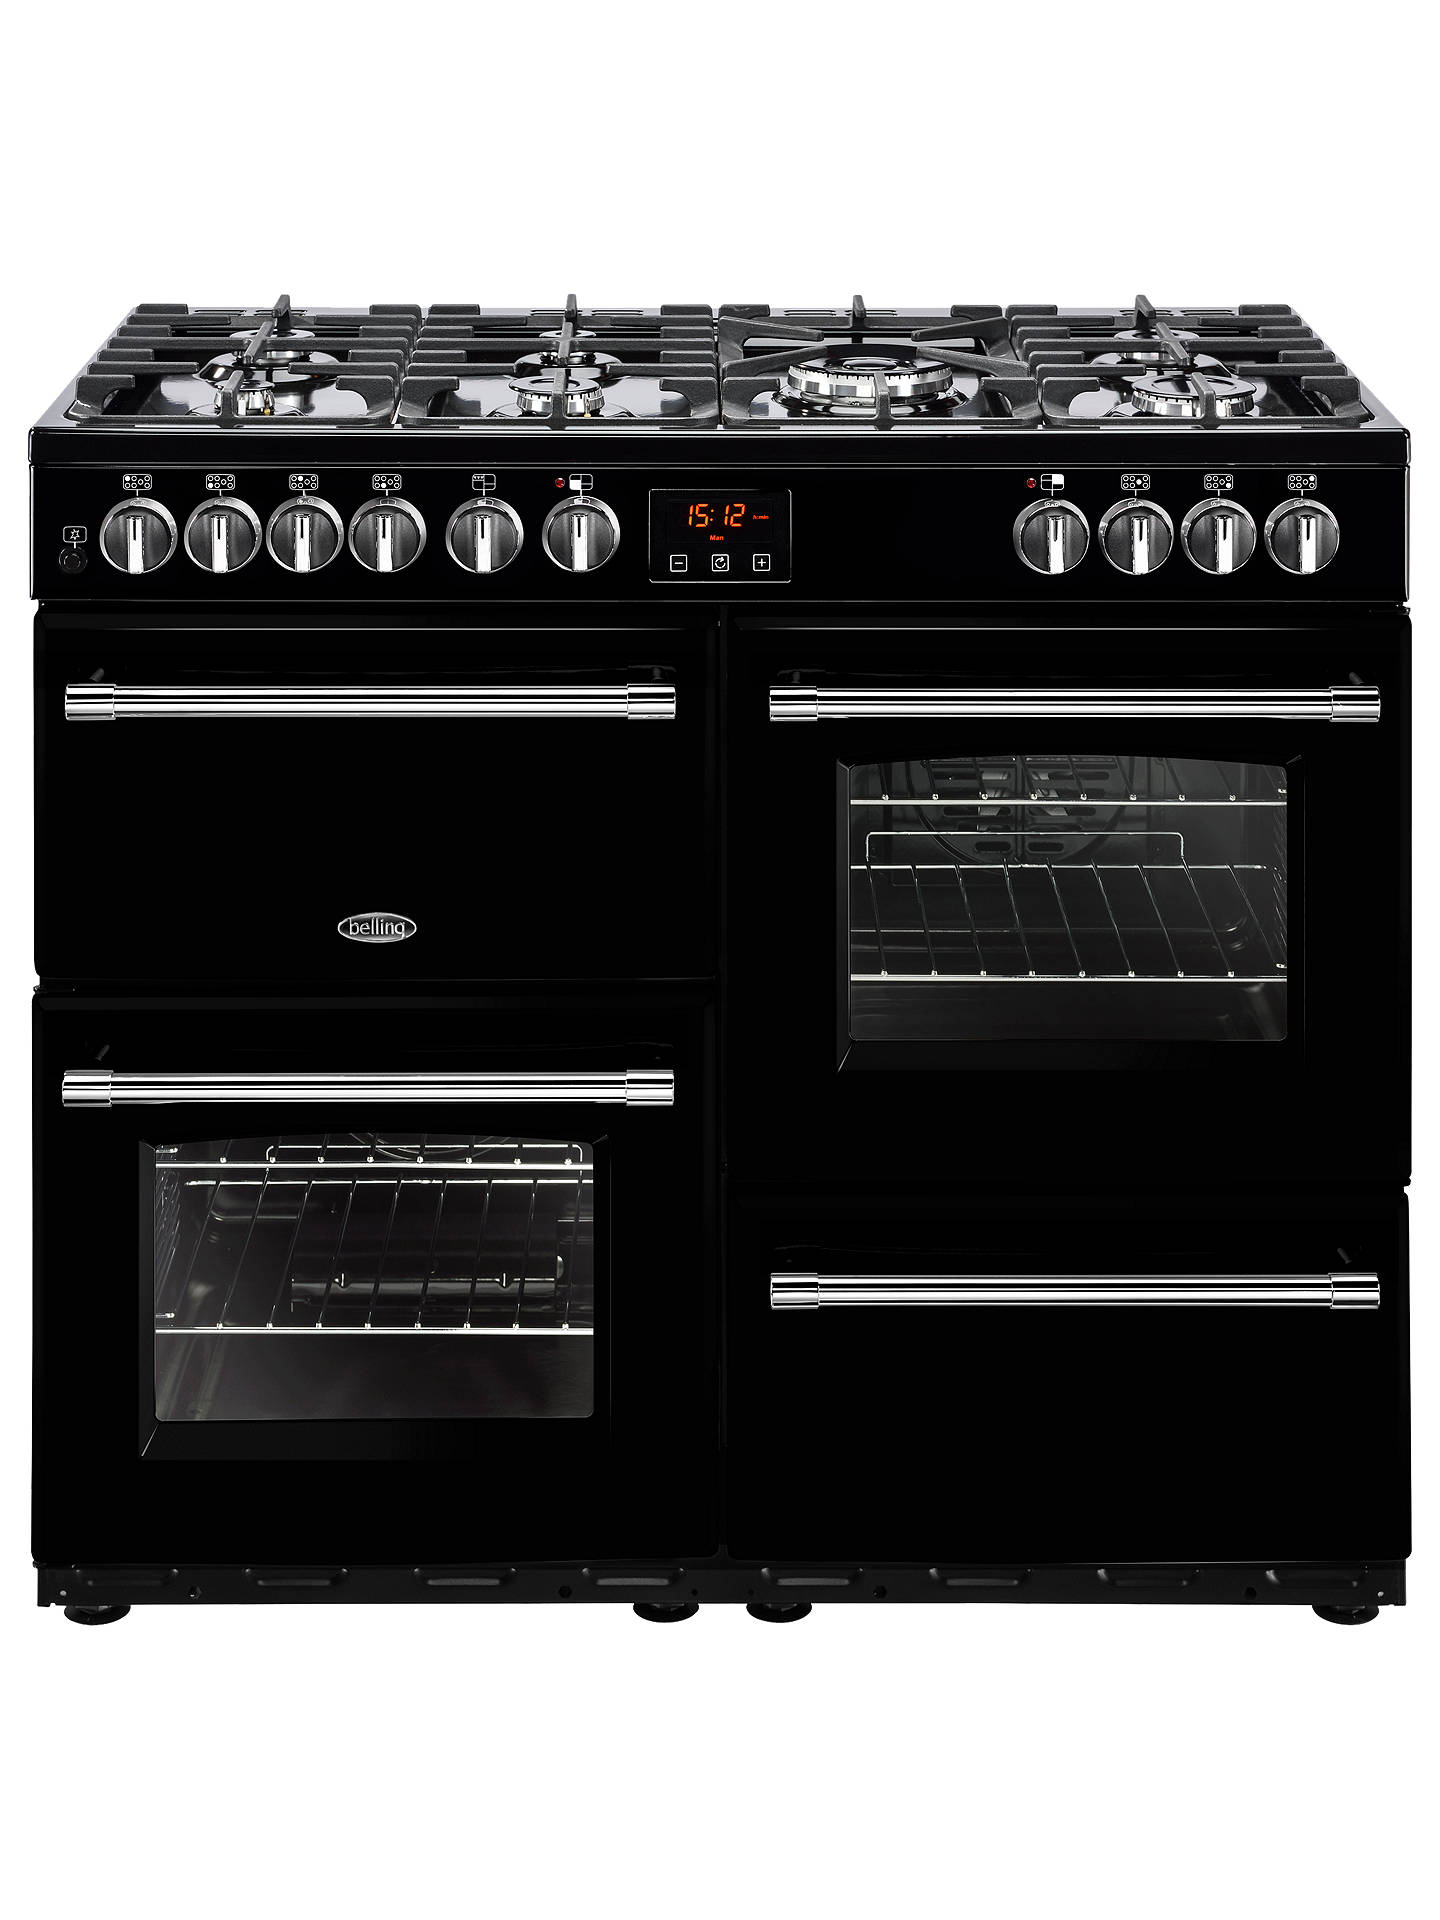 BuyBelling Farmhouse 100DFT Dual Fuel Range Cooker, Black Online at johnlewis.com